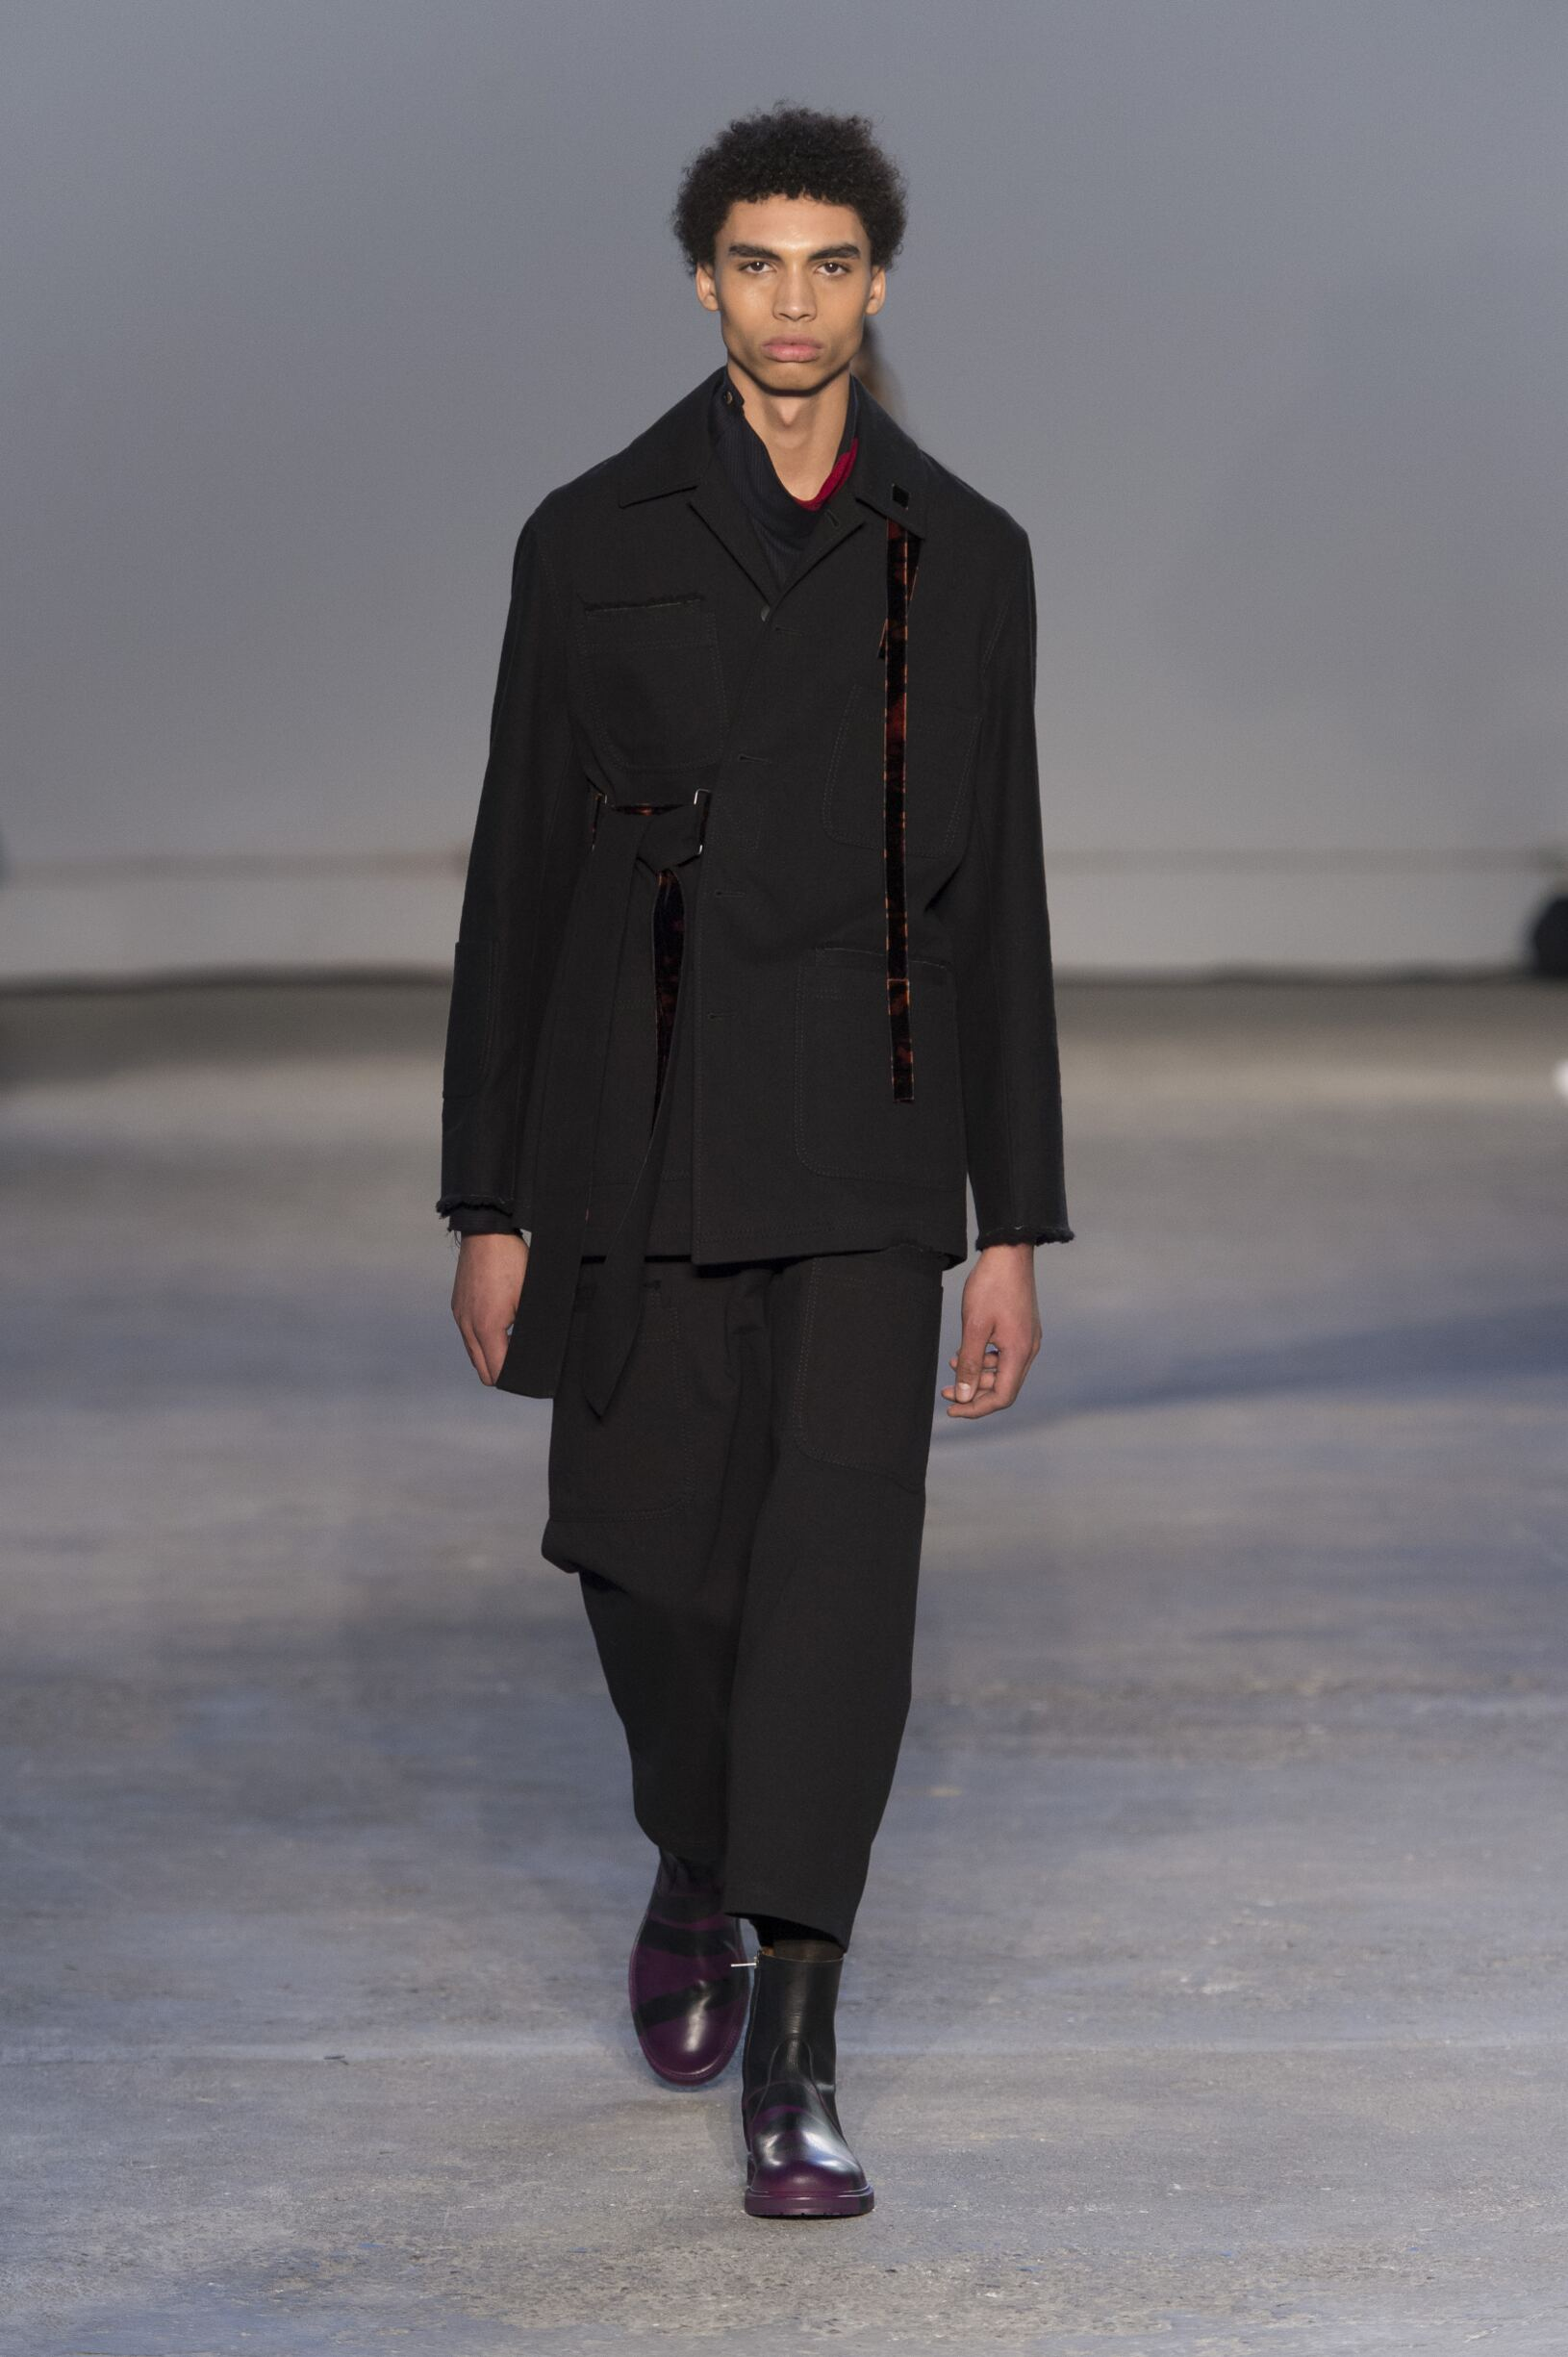 2017 Catwalk Damir Doma Man Fashion Show Winter